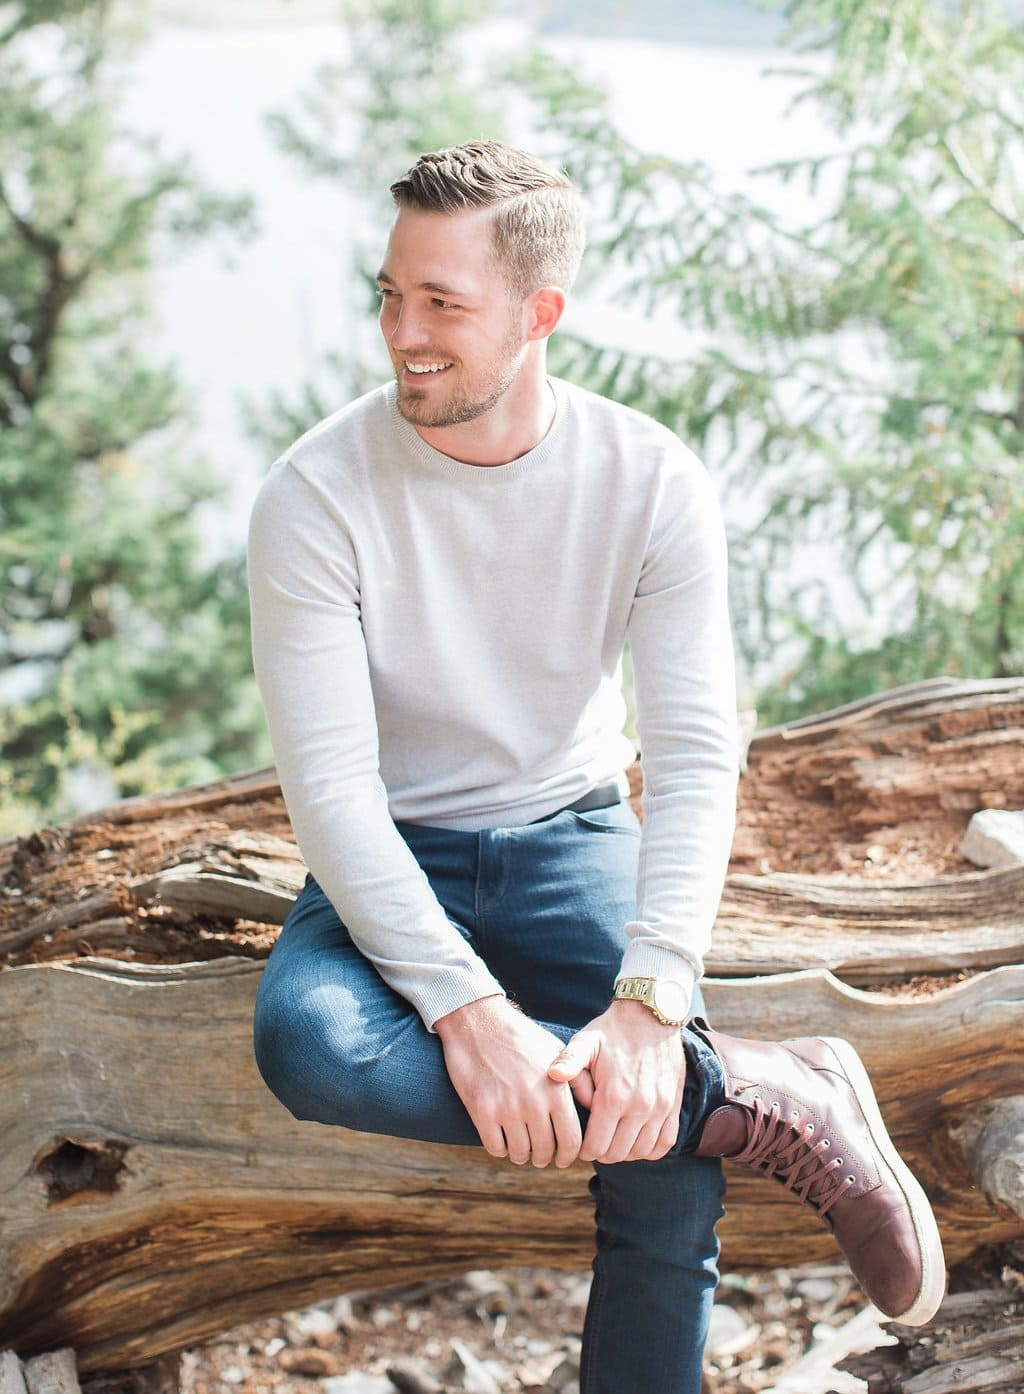 Lake Dillon, Colorado Engagement Photography groom sitting on a log smiling